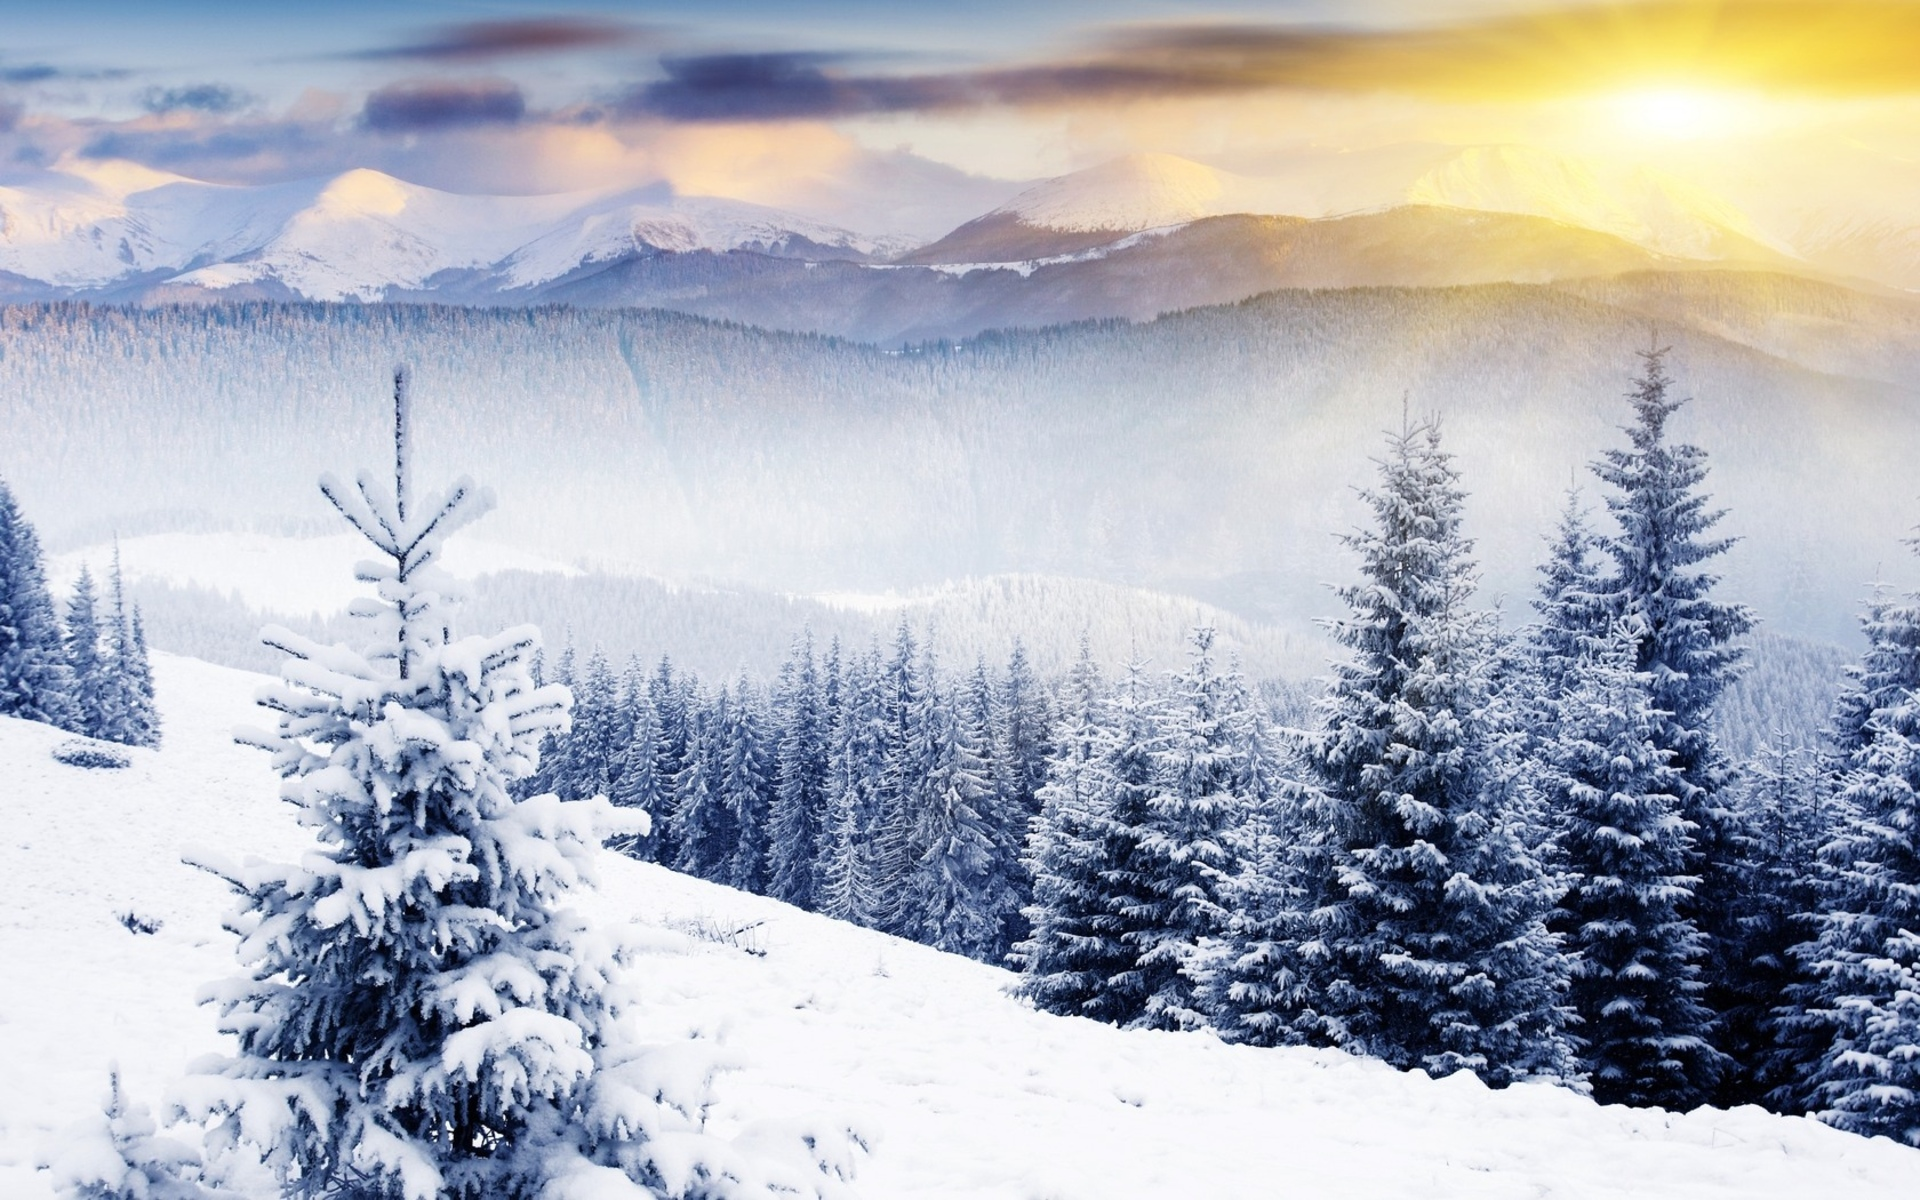 Group Of Beautiful Winter Scenery Wallpaper Desktop